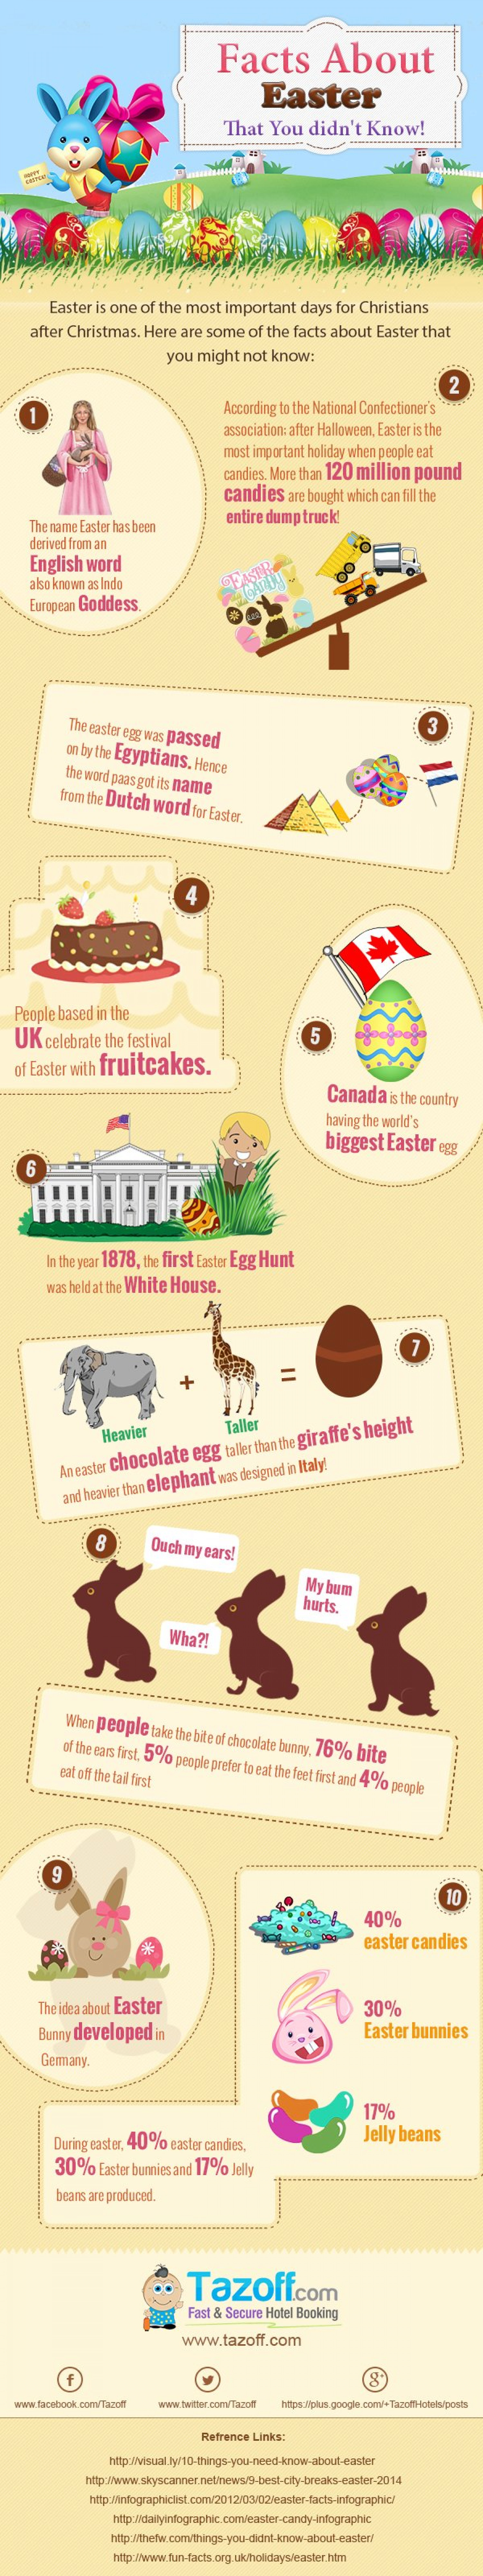 Facts about Easter that You didn't Know! Infographic